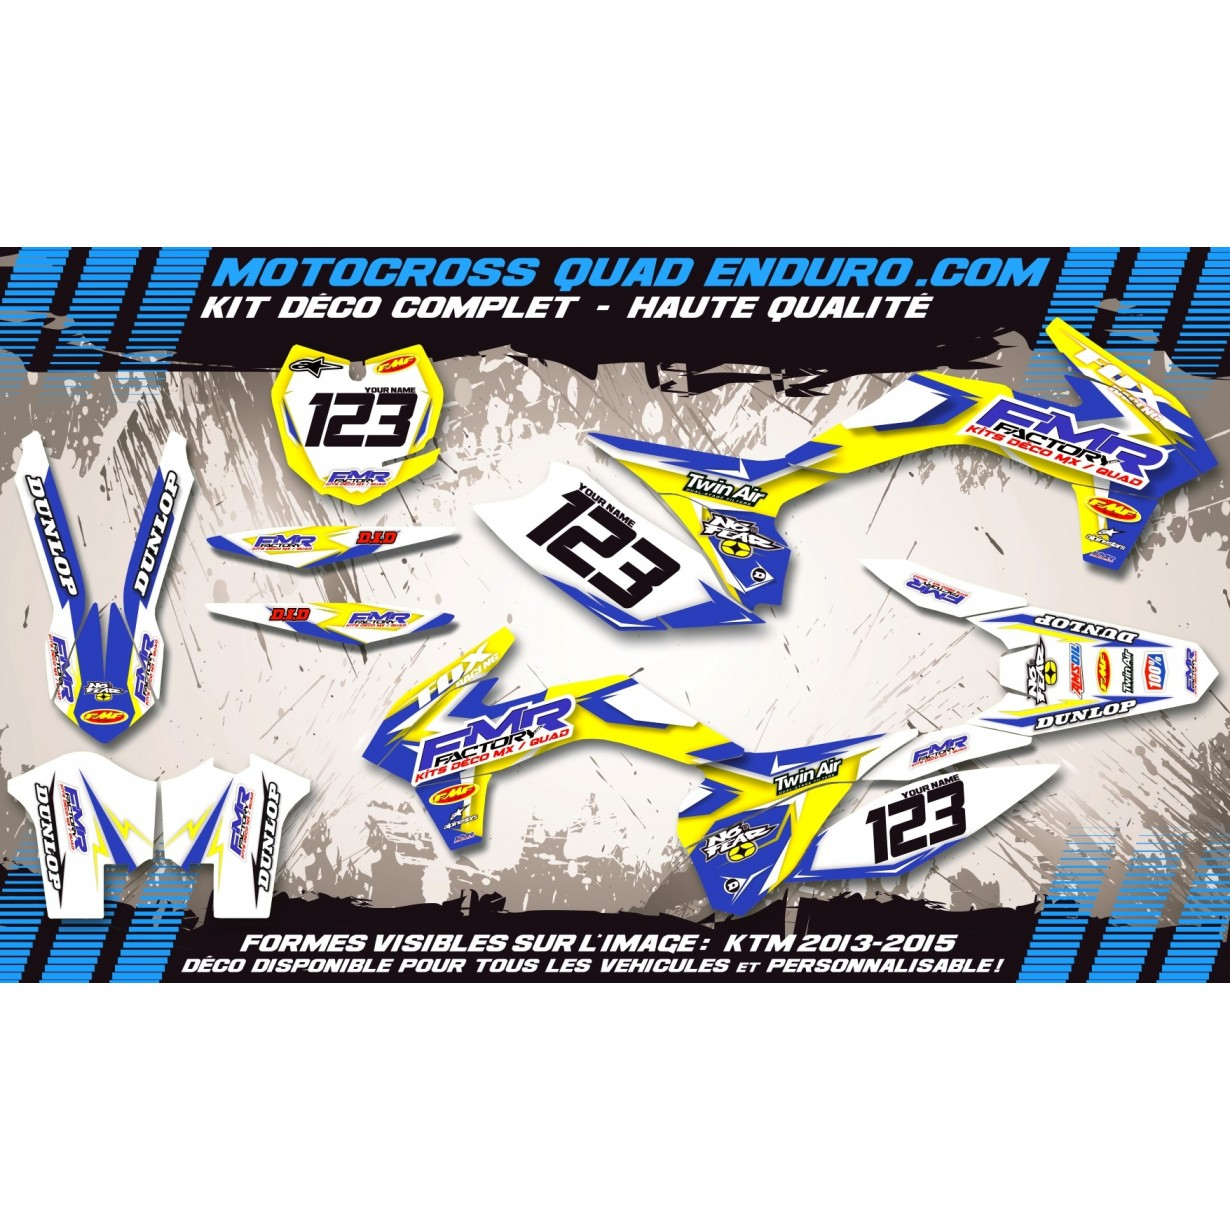 KIT DÉCO Perso 660 RAPTOR Quad Fmr Factory MA13D